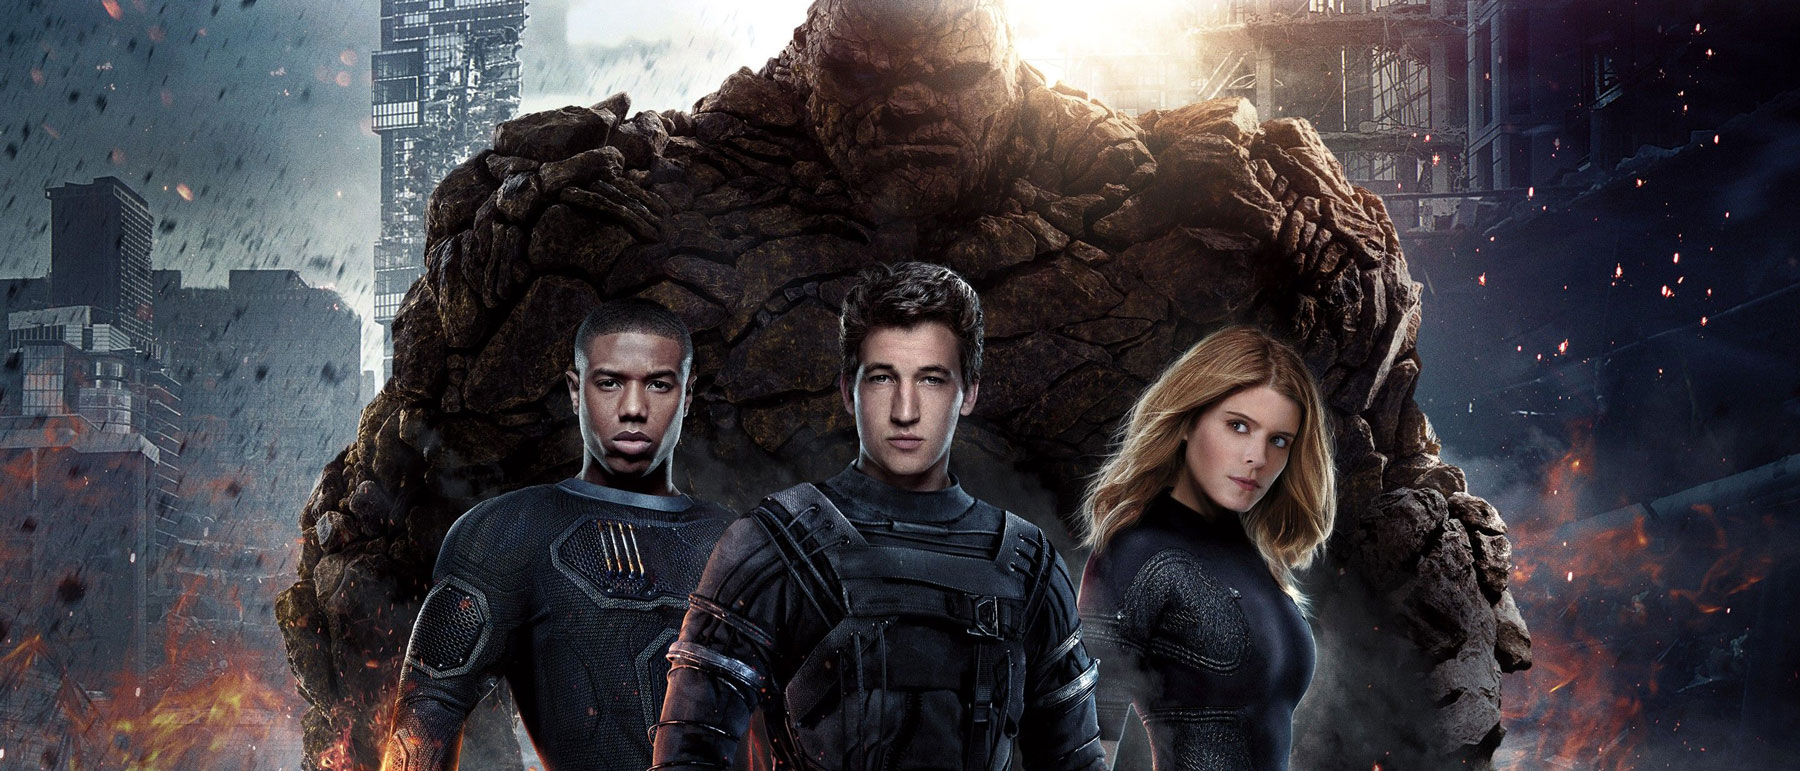 Fantastic-Four-Marvel-MCU-Josh-Trank Disney movie franchise